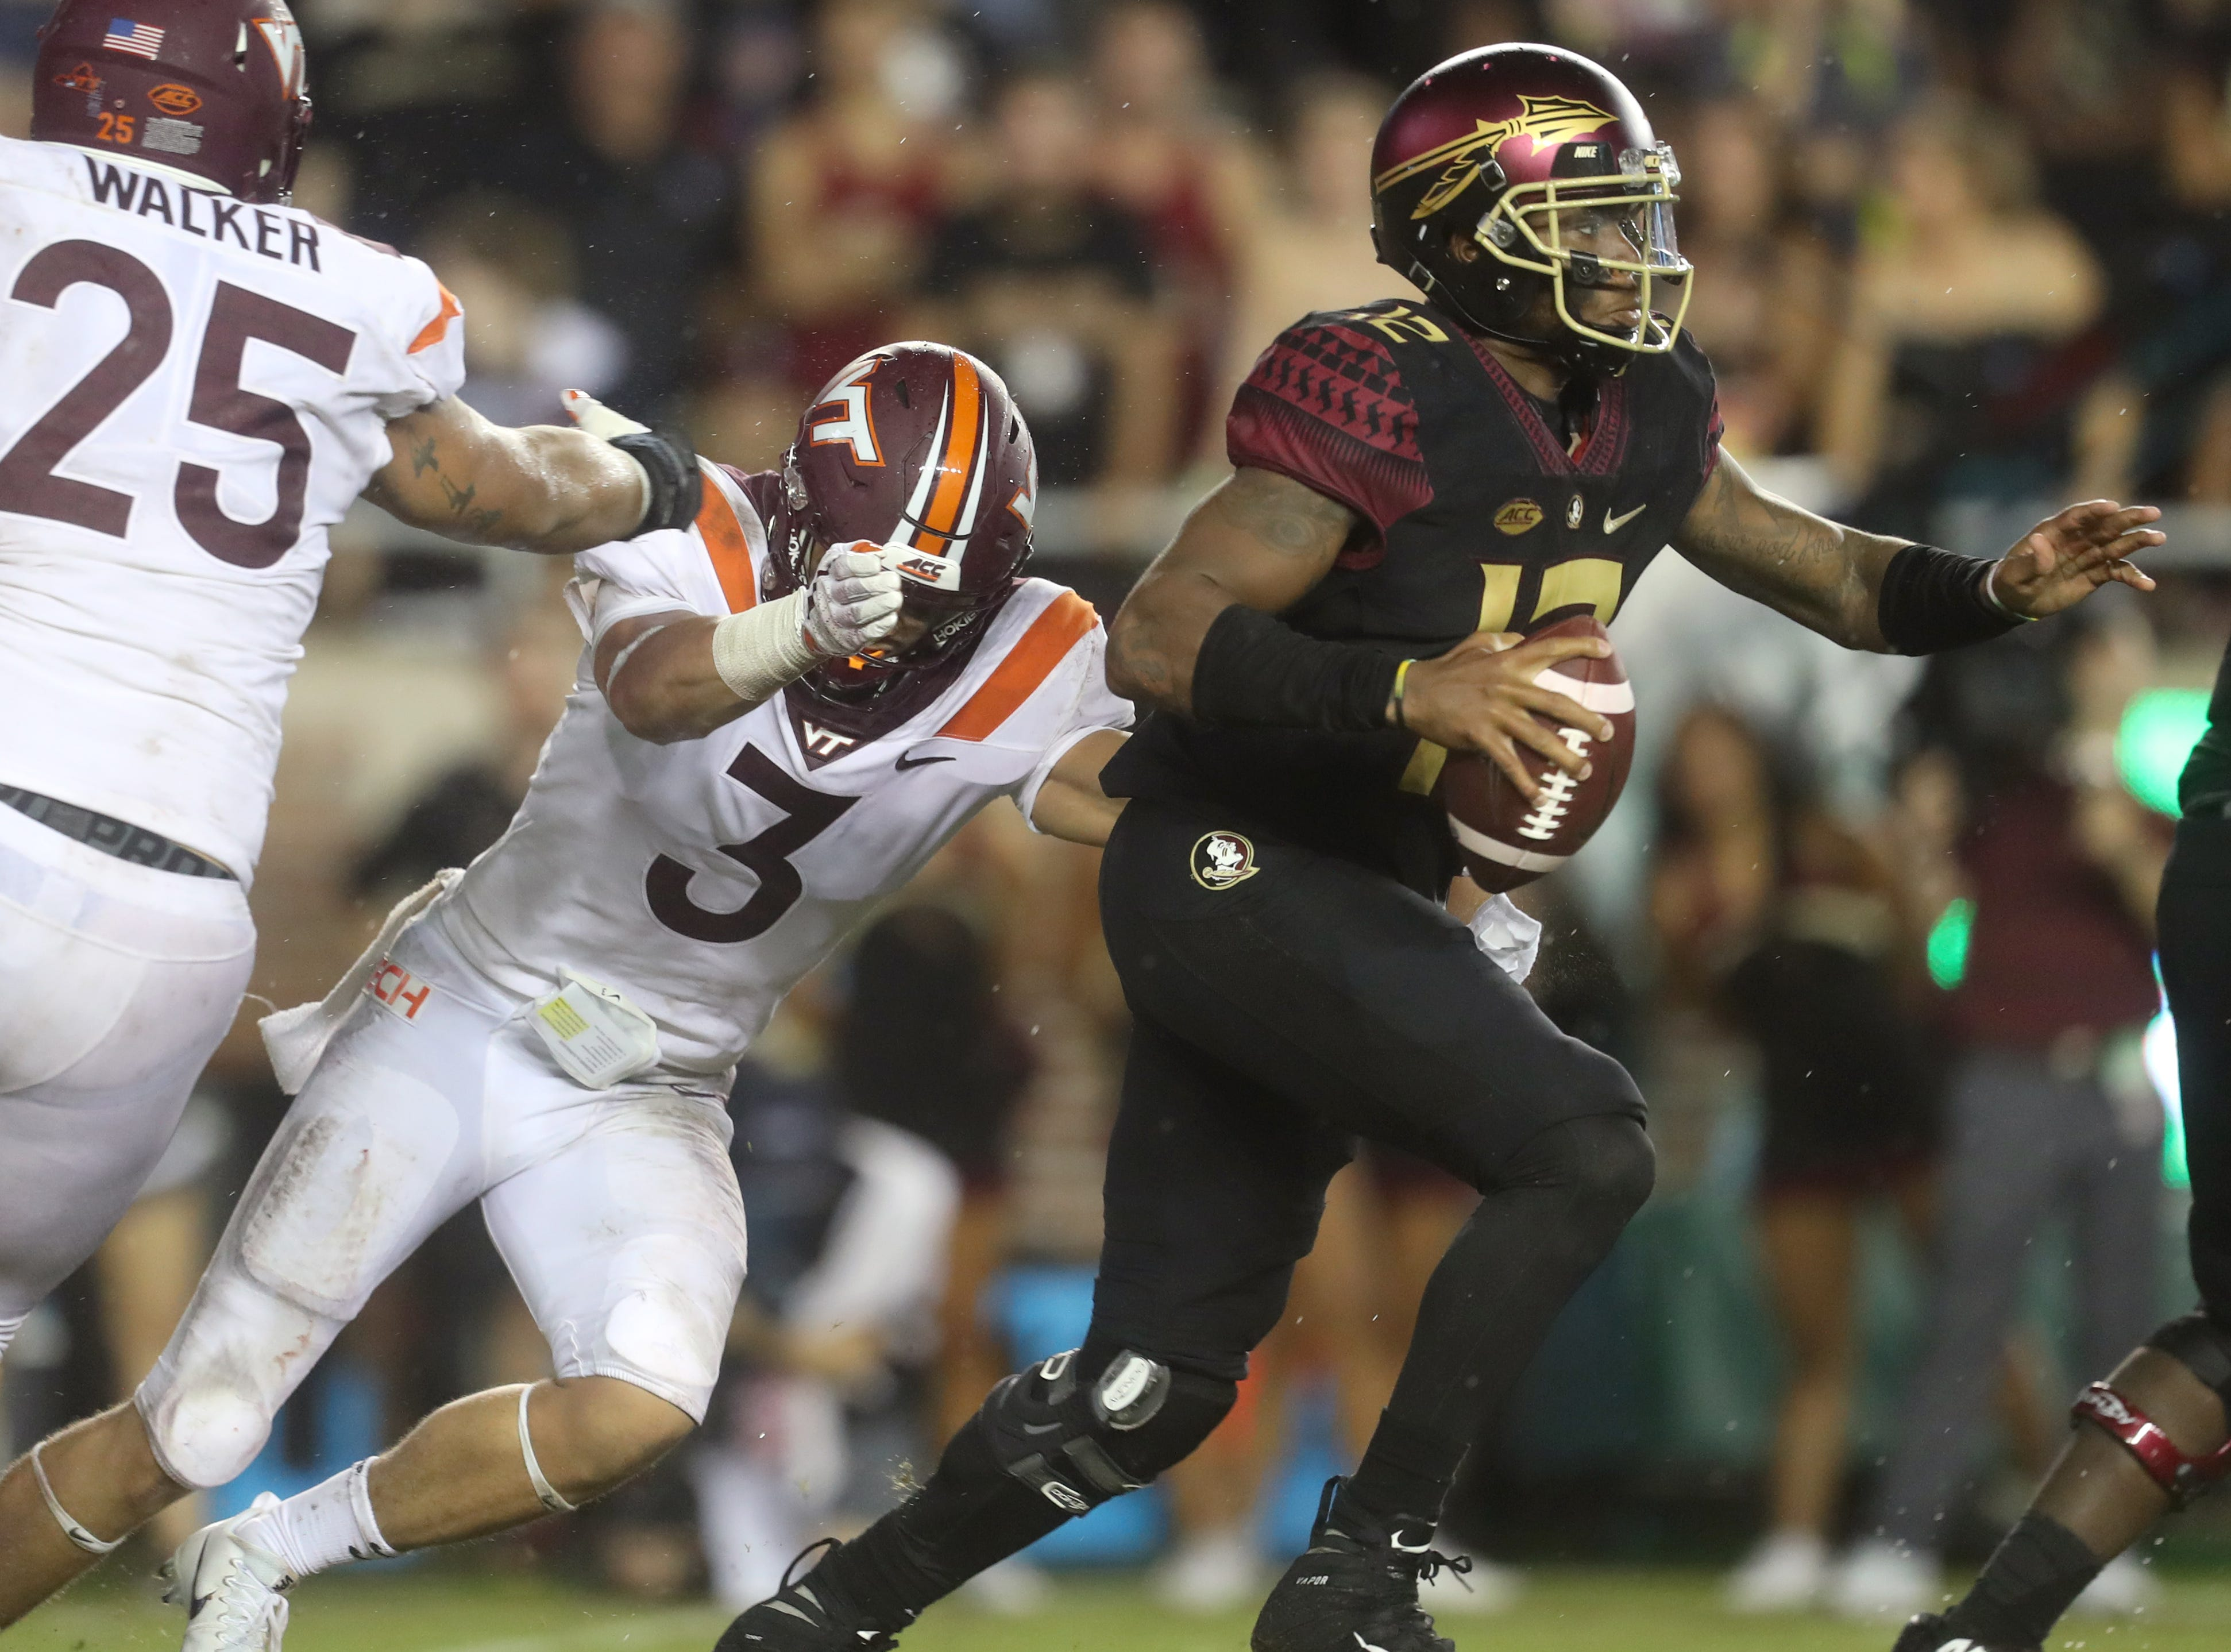 FSU's Deondre Francois is dragged down for a sack by Virginia Tech's Caleb Farley during the Hokies' 24-3 at Doak Campbell Stadium in Tallahassee, Fla. On Monday, Sept 3, 2018.